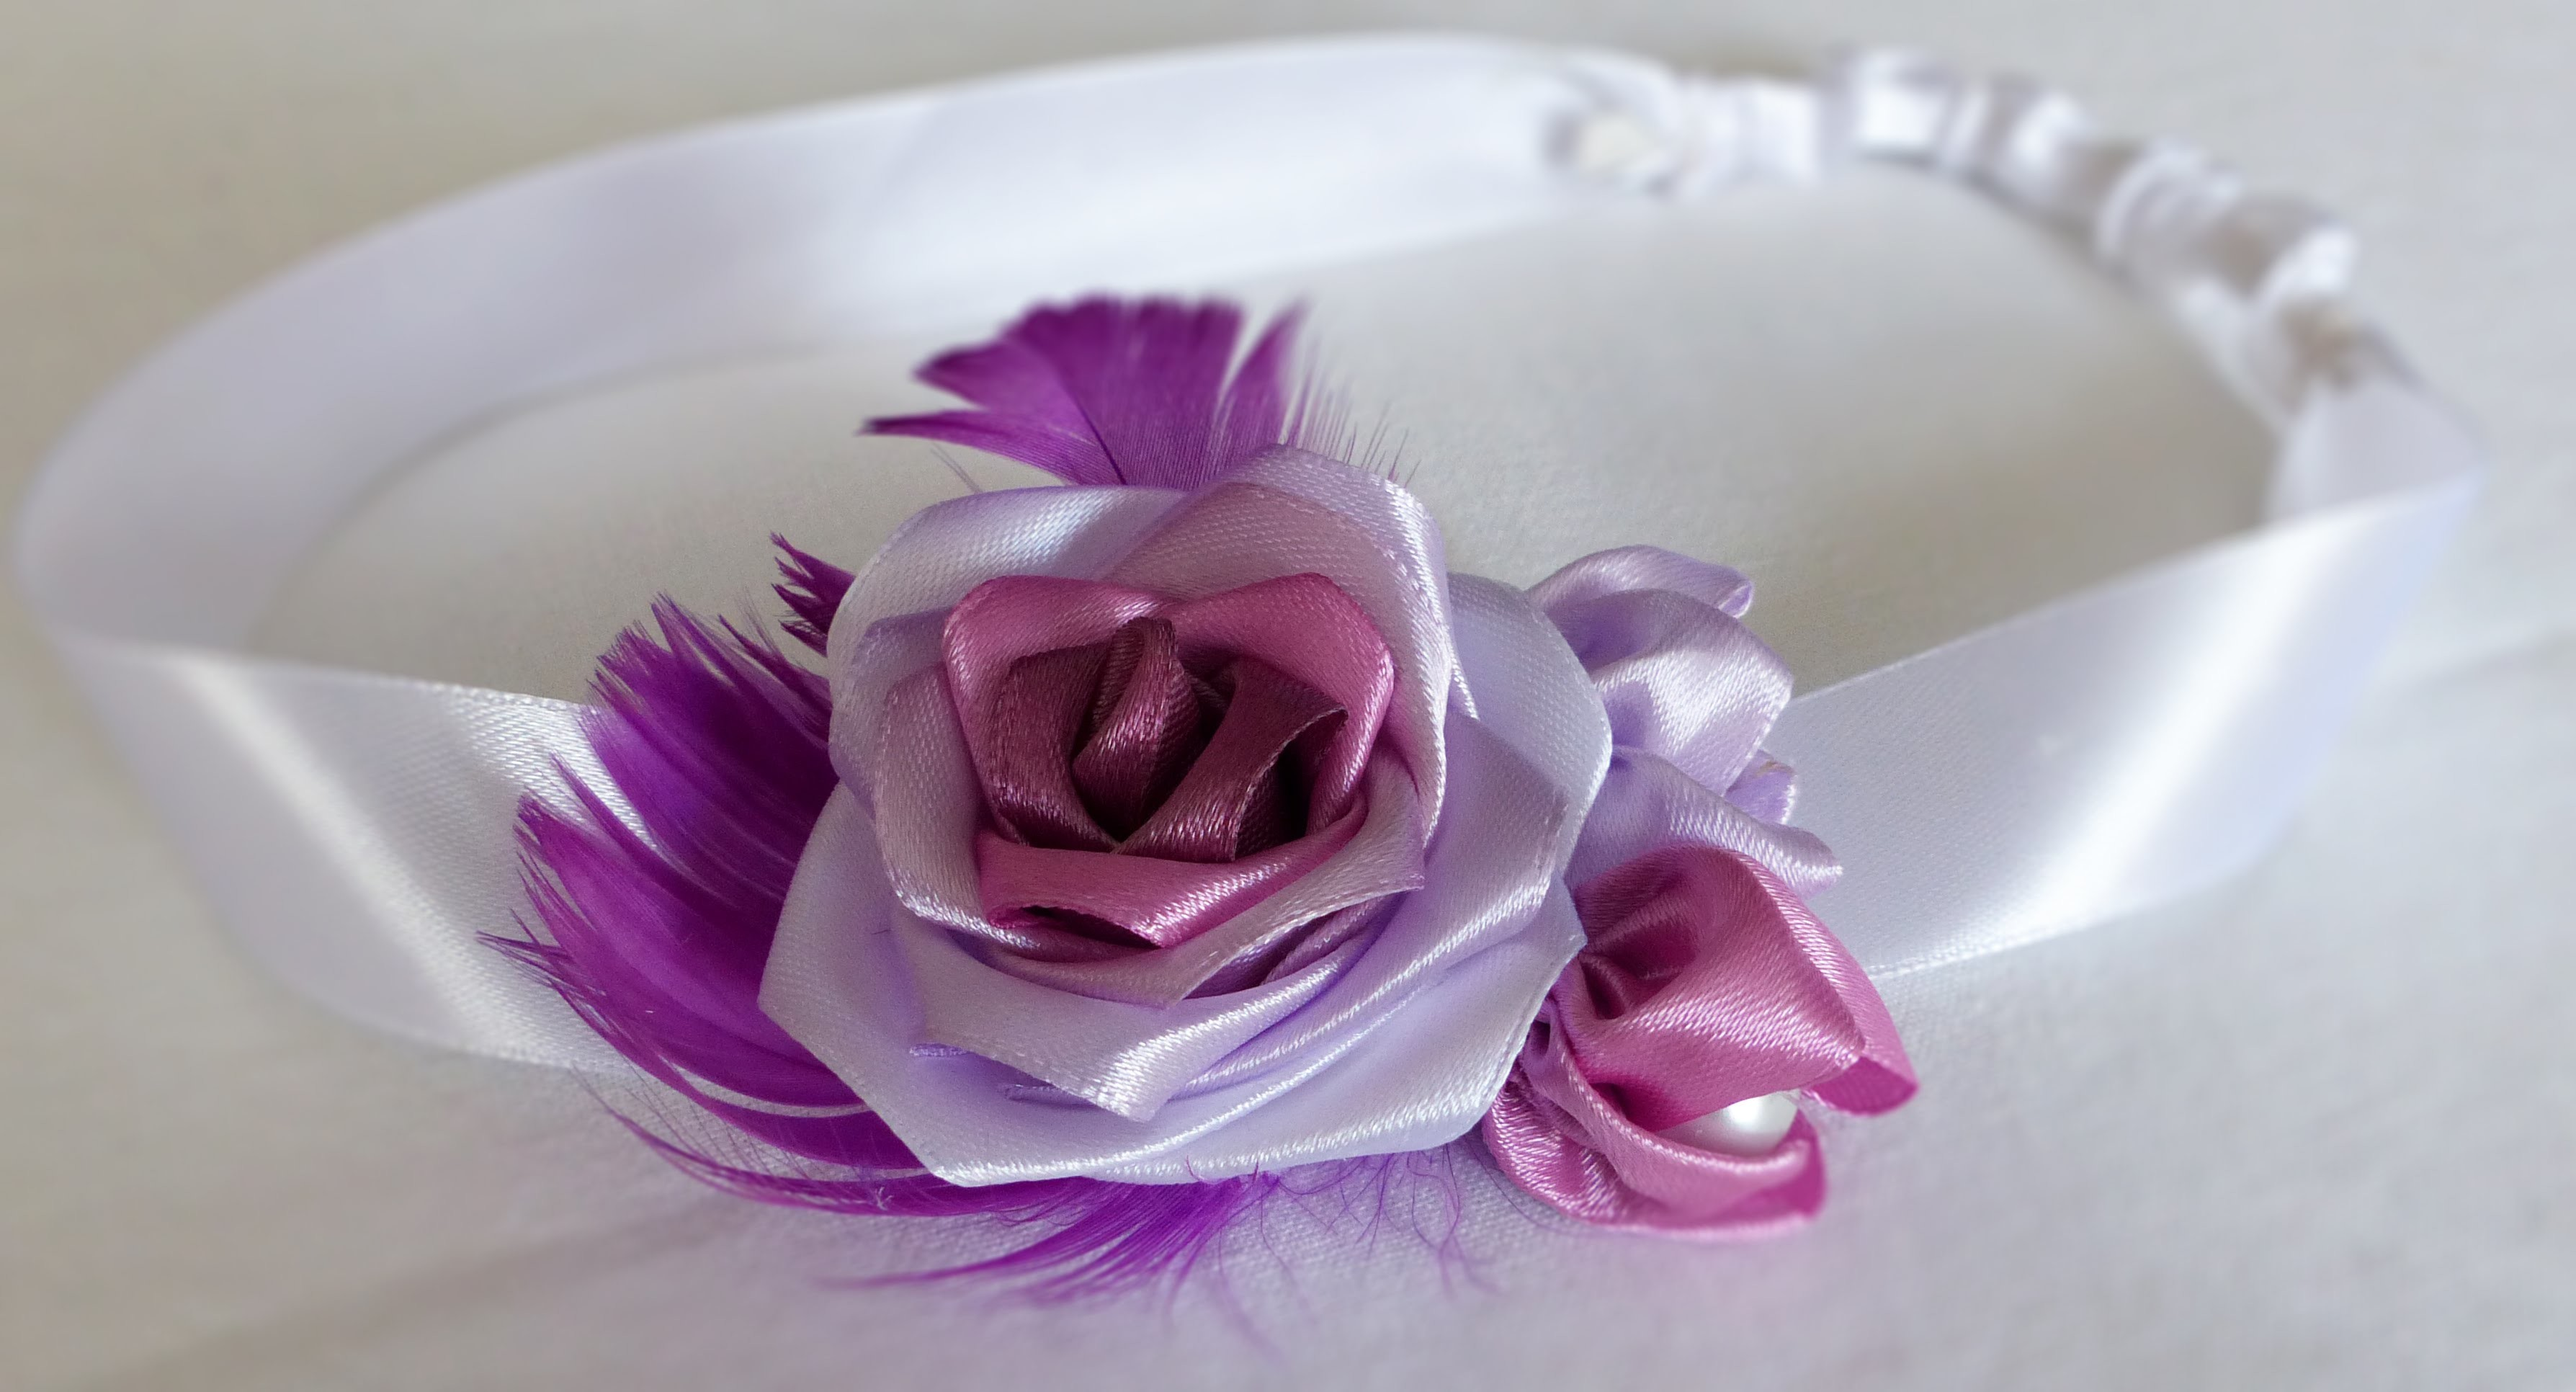 DIY handmade satin ribbon rose feather headband róża wstążka satynowa Роза из атласной ленты opaska